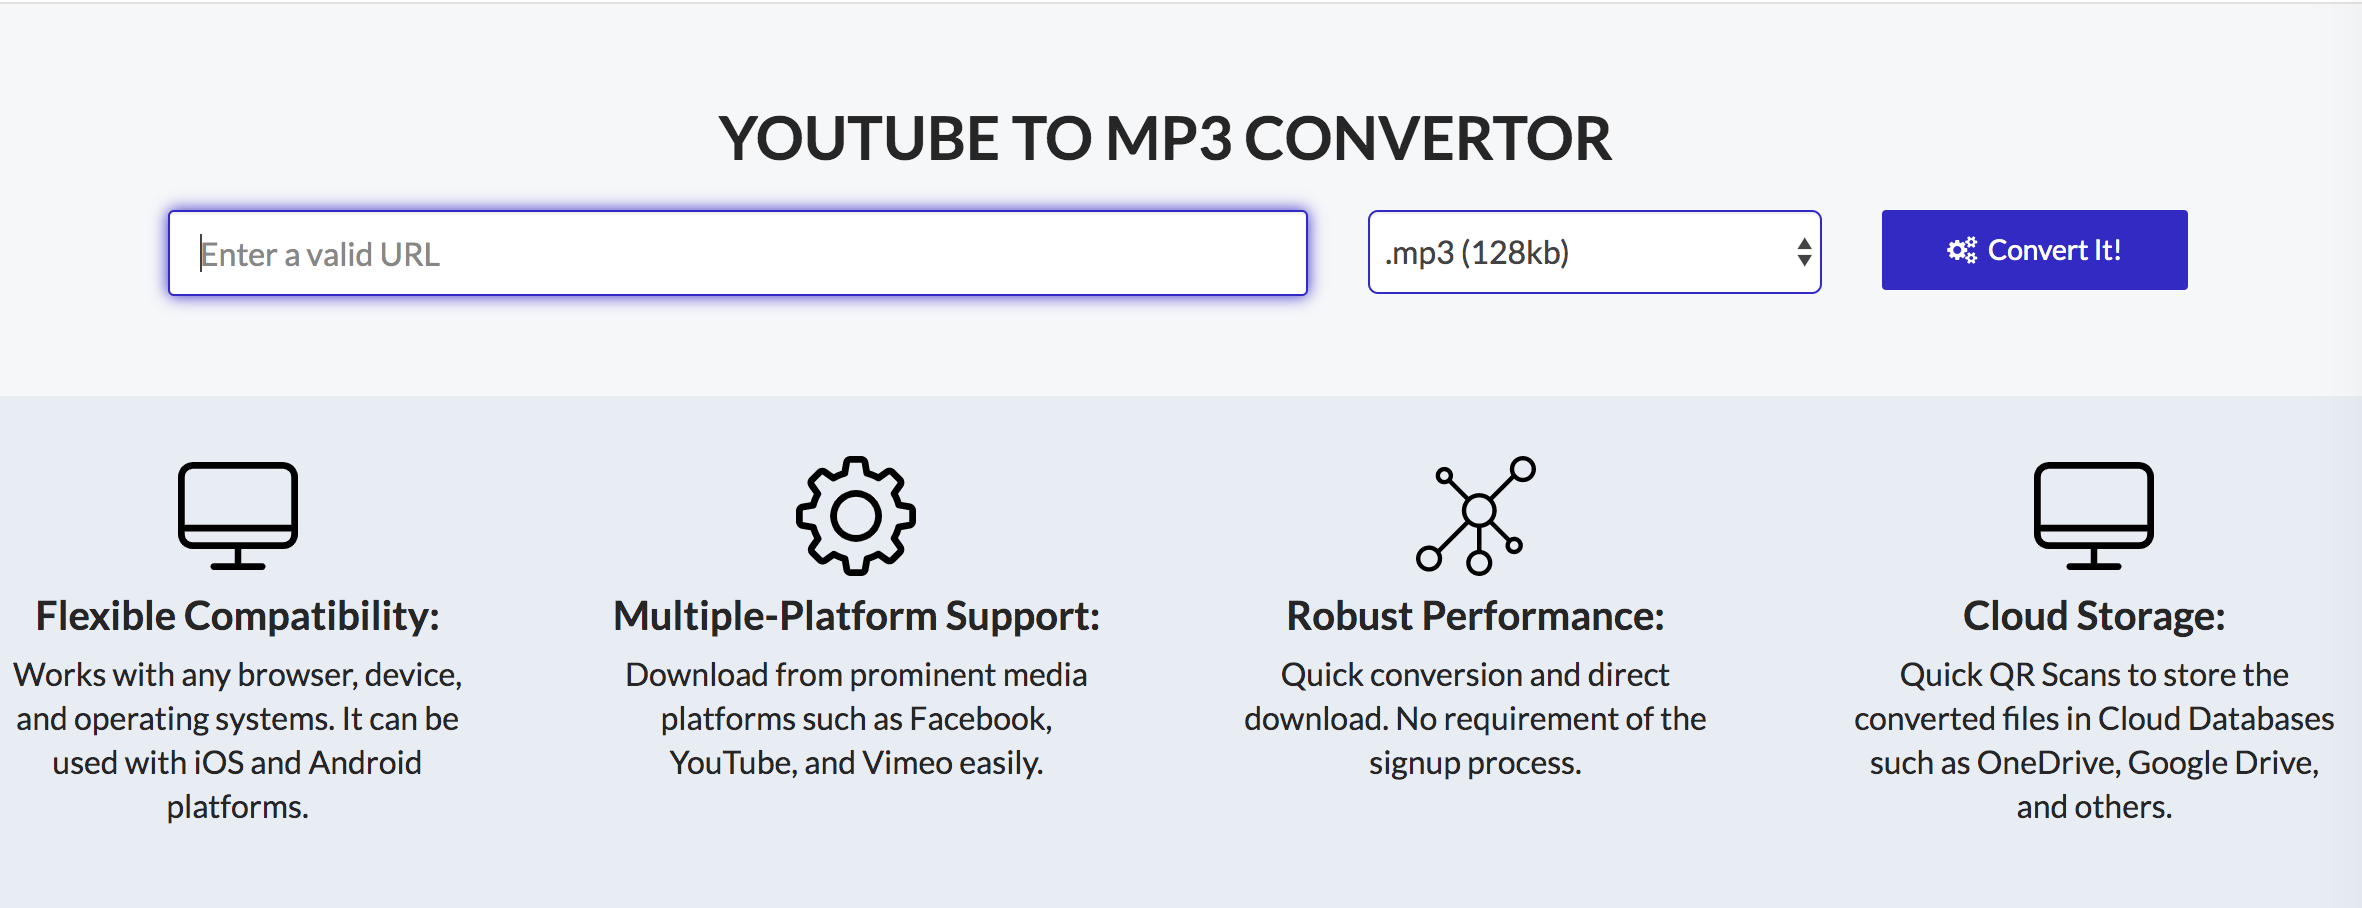 3 Super Advantages using YouTube to MP3 converter